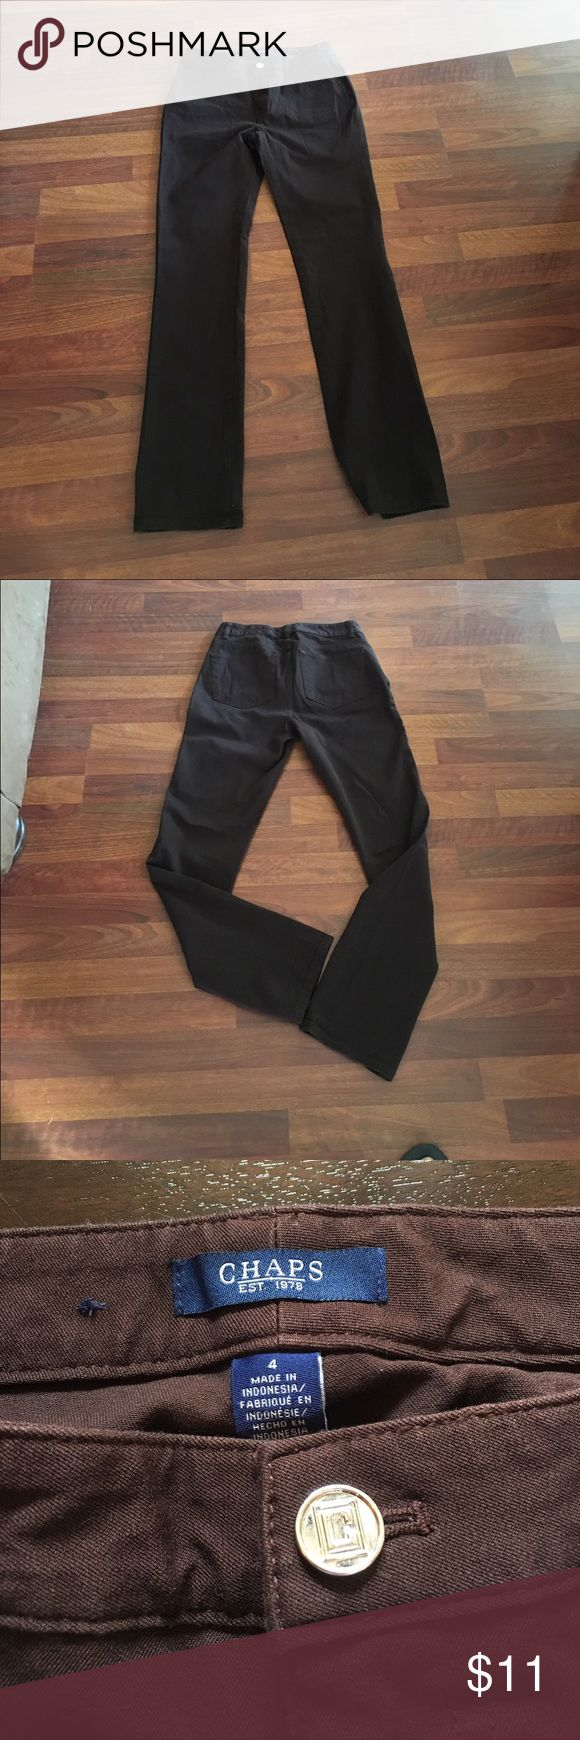 Chaps ladies pants Chaps ladies crop pants.  Sets right on ankle. Really cute in. Color is brown.  Size 4. Great for fall and winter🍂👢. Like new. Thank for looking💋 Chaps Pants Ankle & Cropped